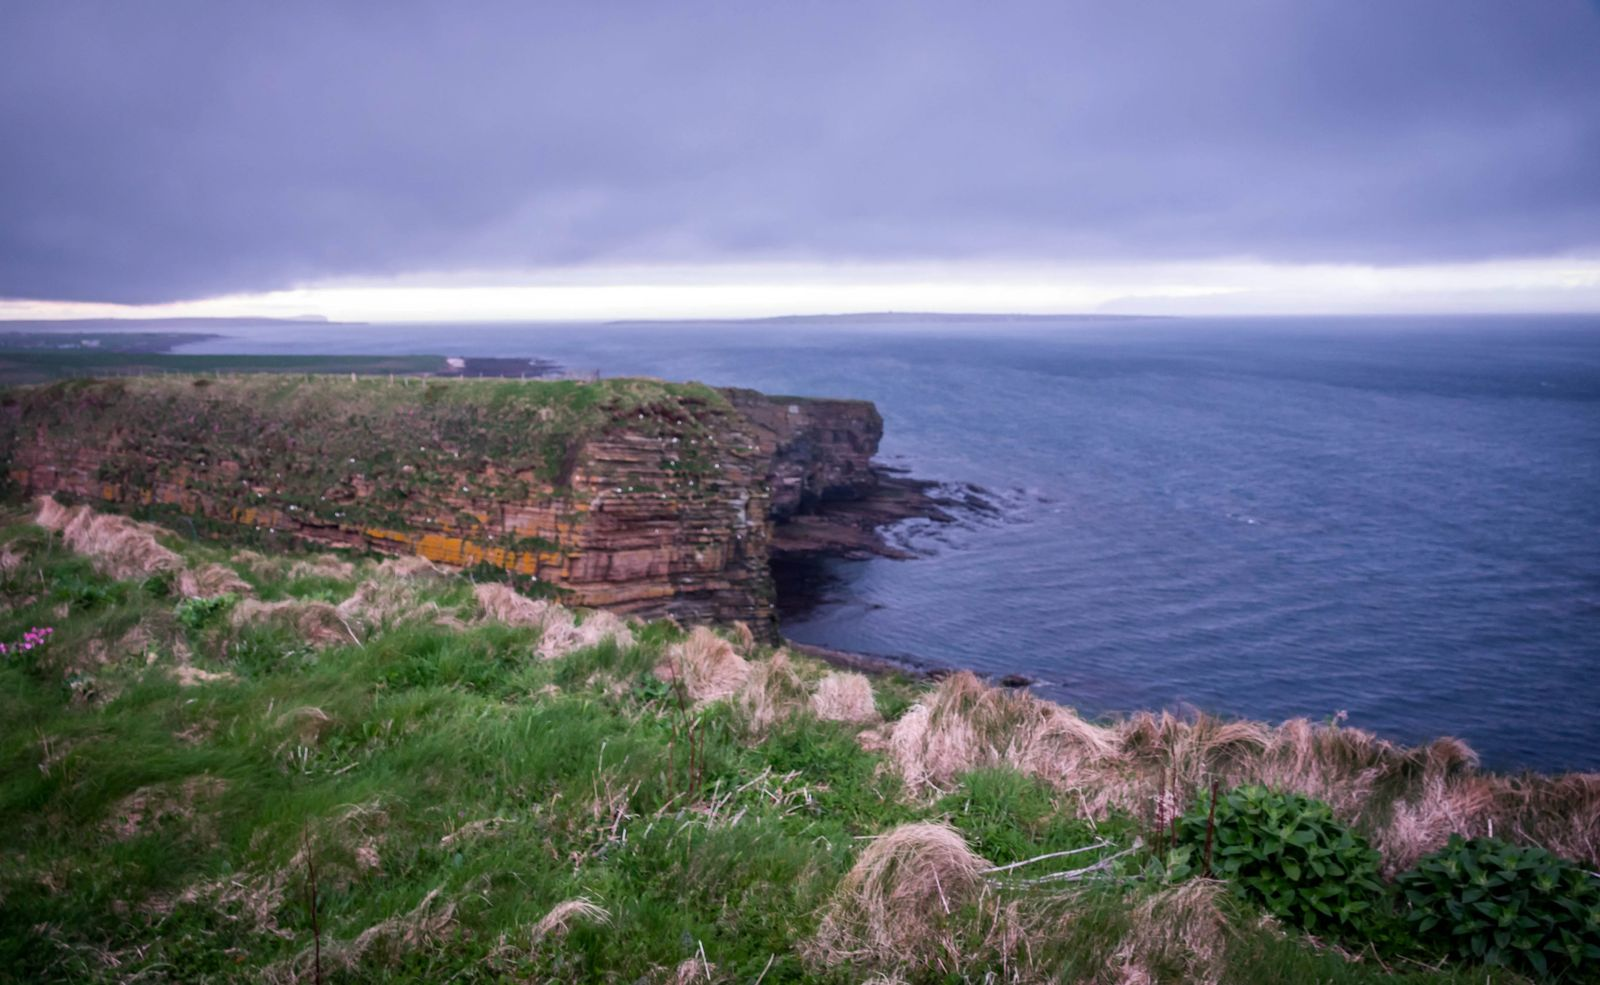 Sinclair Girnigoe Castle in Scotland - Culture Trekking - #SinclairGirnigoeCastle #Scotland #NC500Coastline